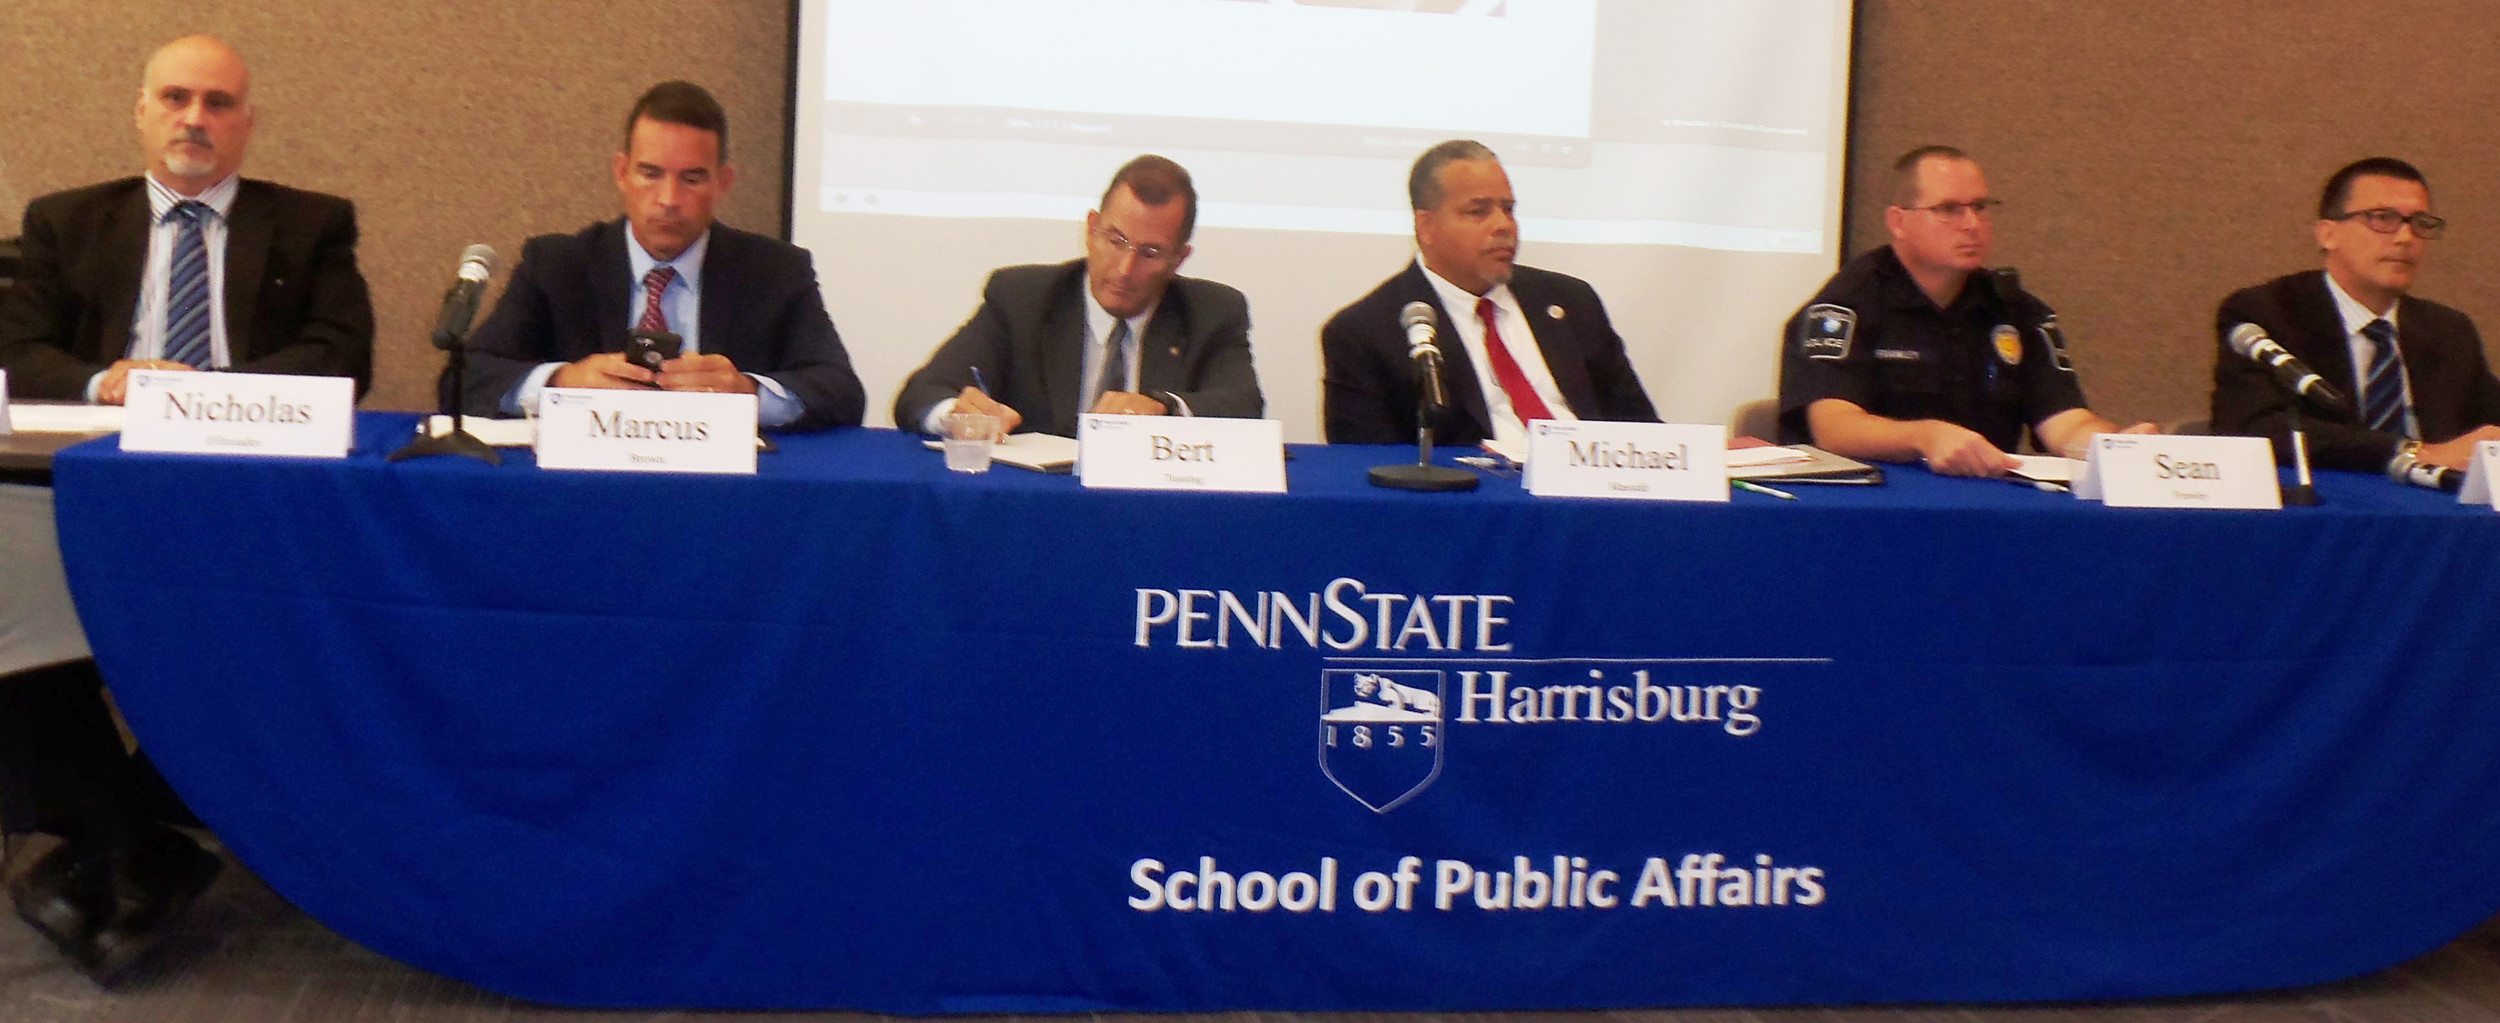 "Penn State Harrisburg's School of Public Affairs hosted a panel discussion, ""How Homeland Security Evolved and Where We Are Now"" on Monday at the campus in Lower Swatara Township. The event coincided with the 16th anniversary of the terrorism acts that changed the face of our nation."